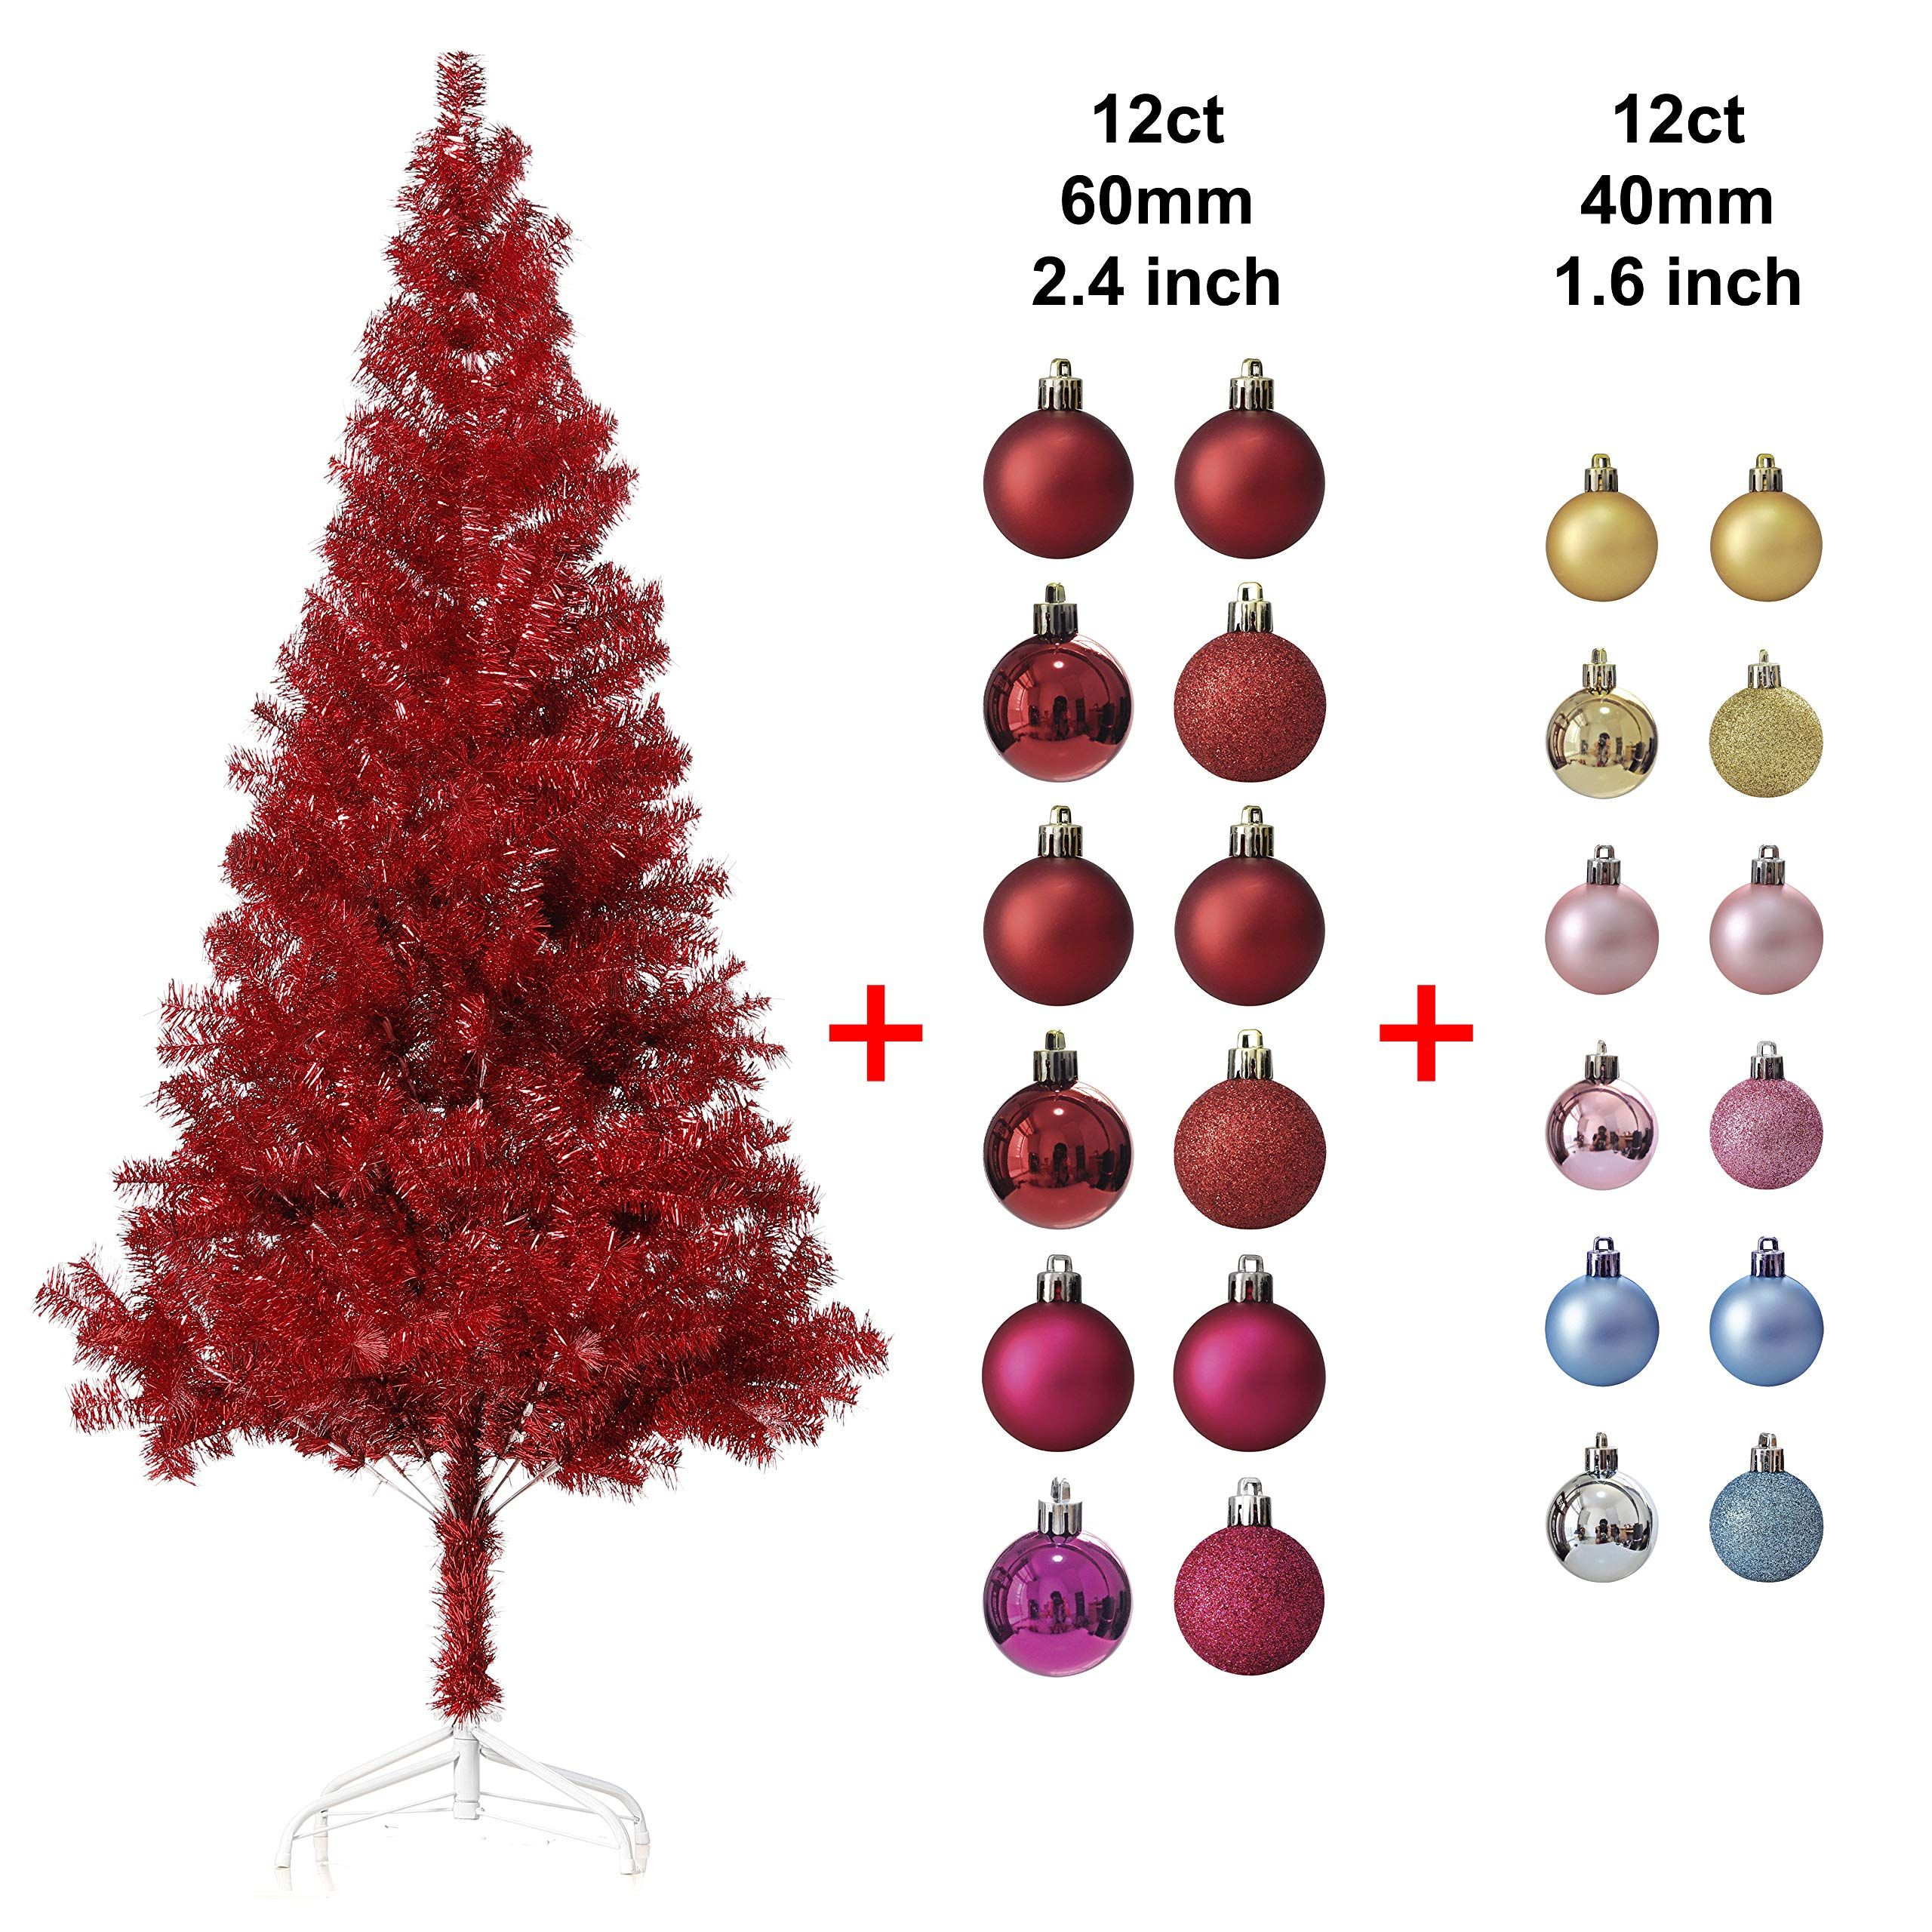 Wellwood 6 Ft Tinsel Christmas Tree With 24ct Assorted Ornament Set Metal Stand Easy Assembly Red You Ca Tinsel Christmas Tree Christmas Tree Ornament Set